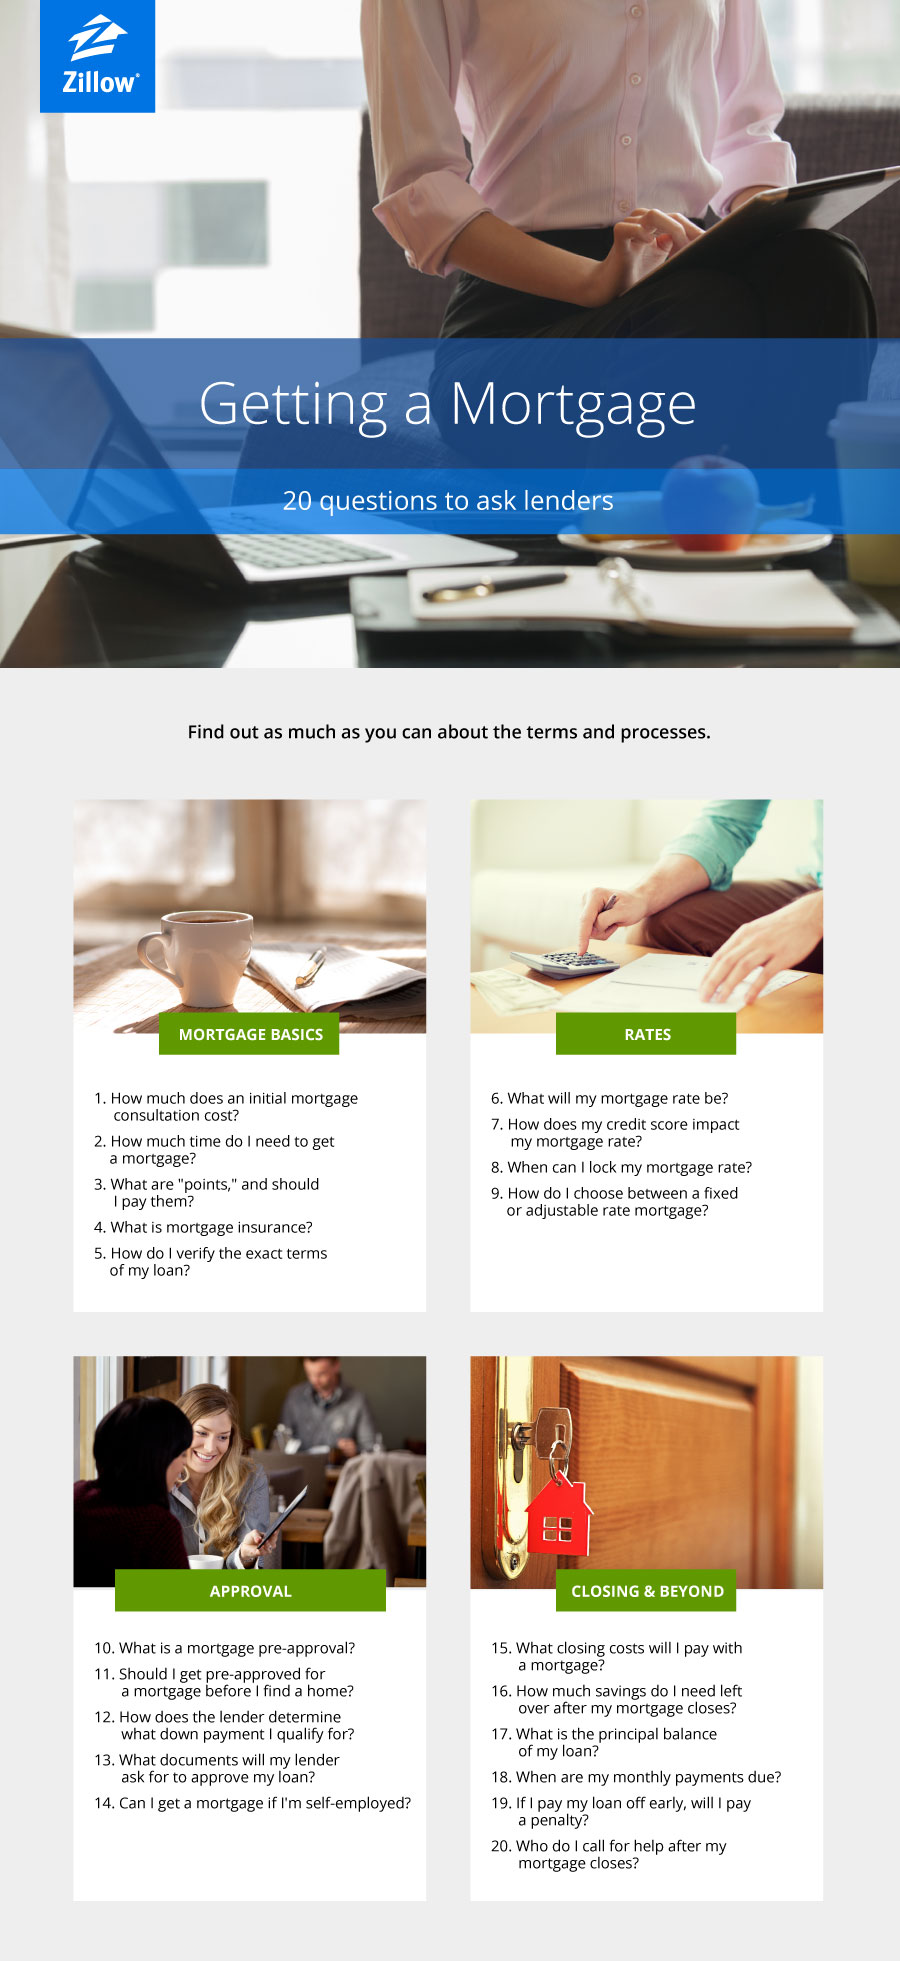 20Qs-Mortgage_Zillow_a_02